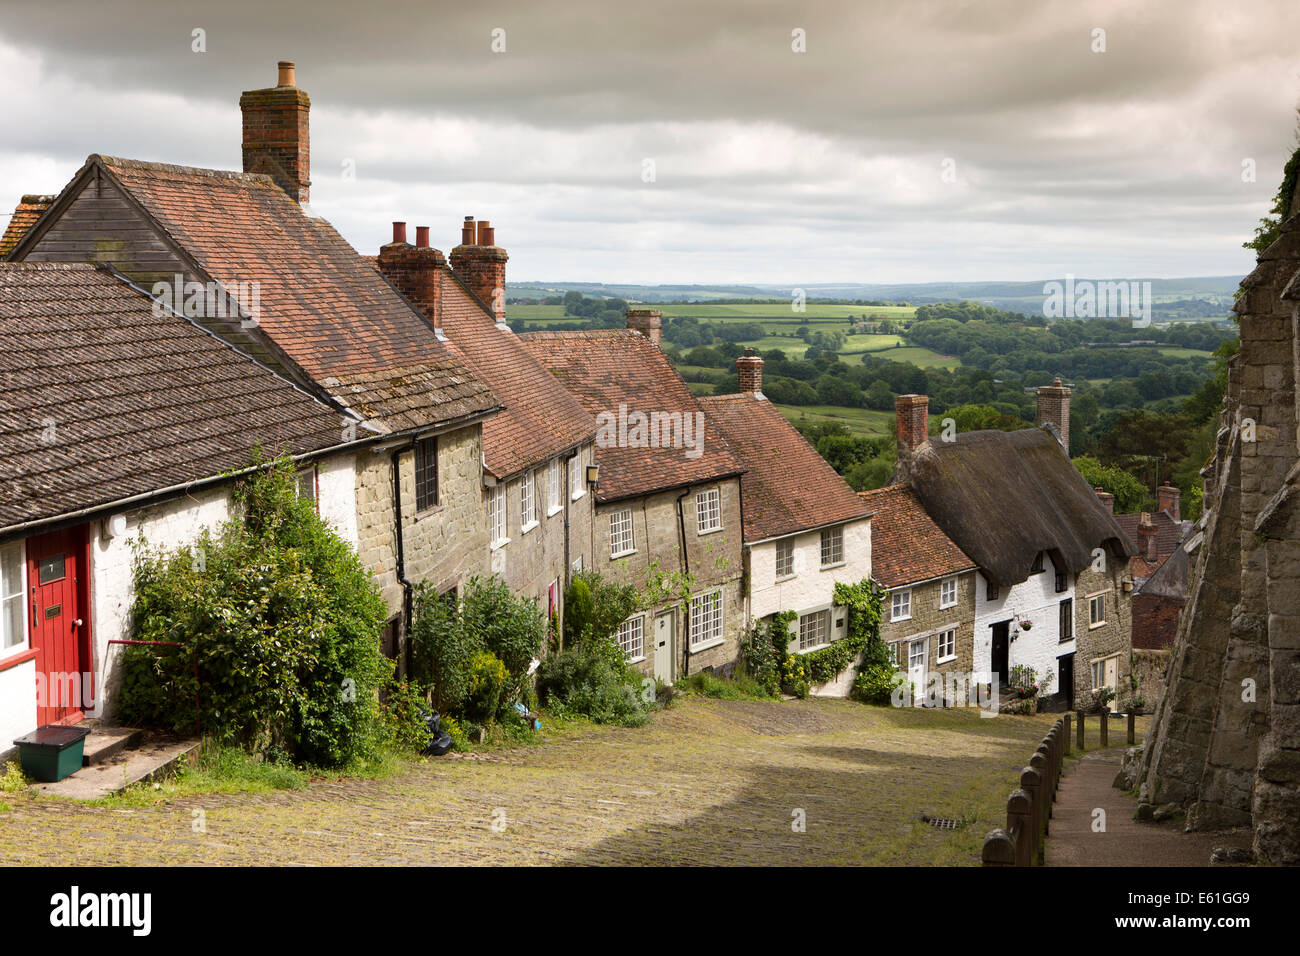 UK England, Dorset, Shaftesbury, Gold Hill - Stock Image